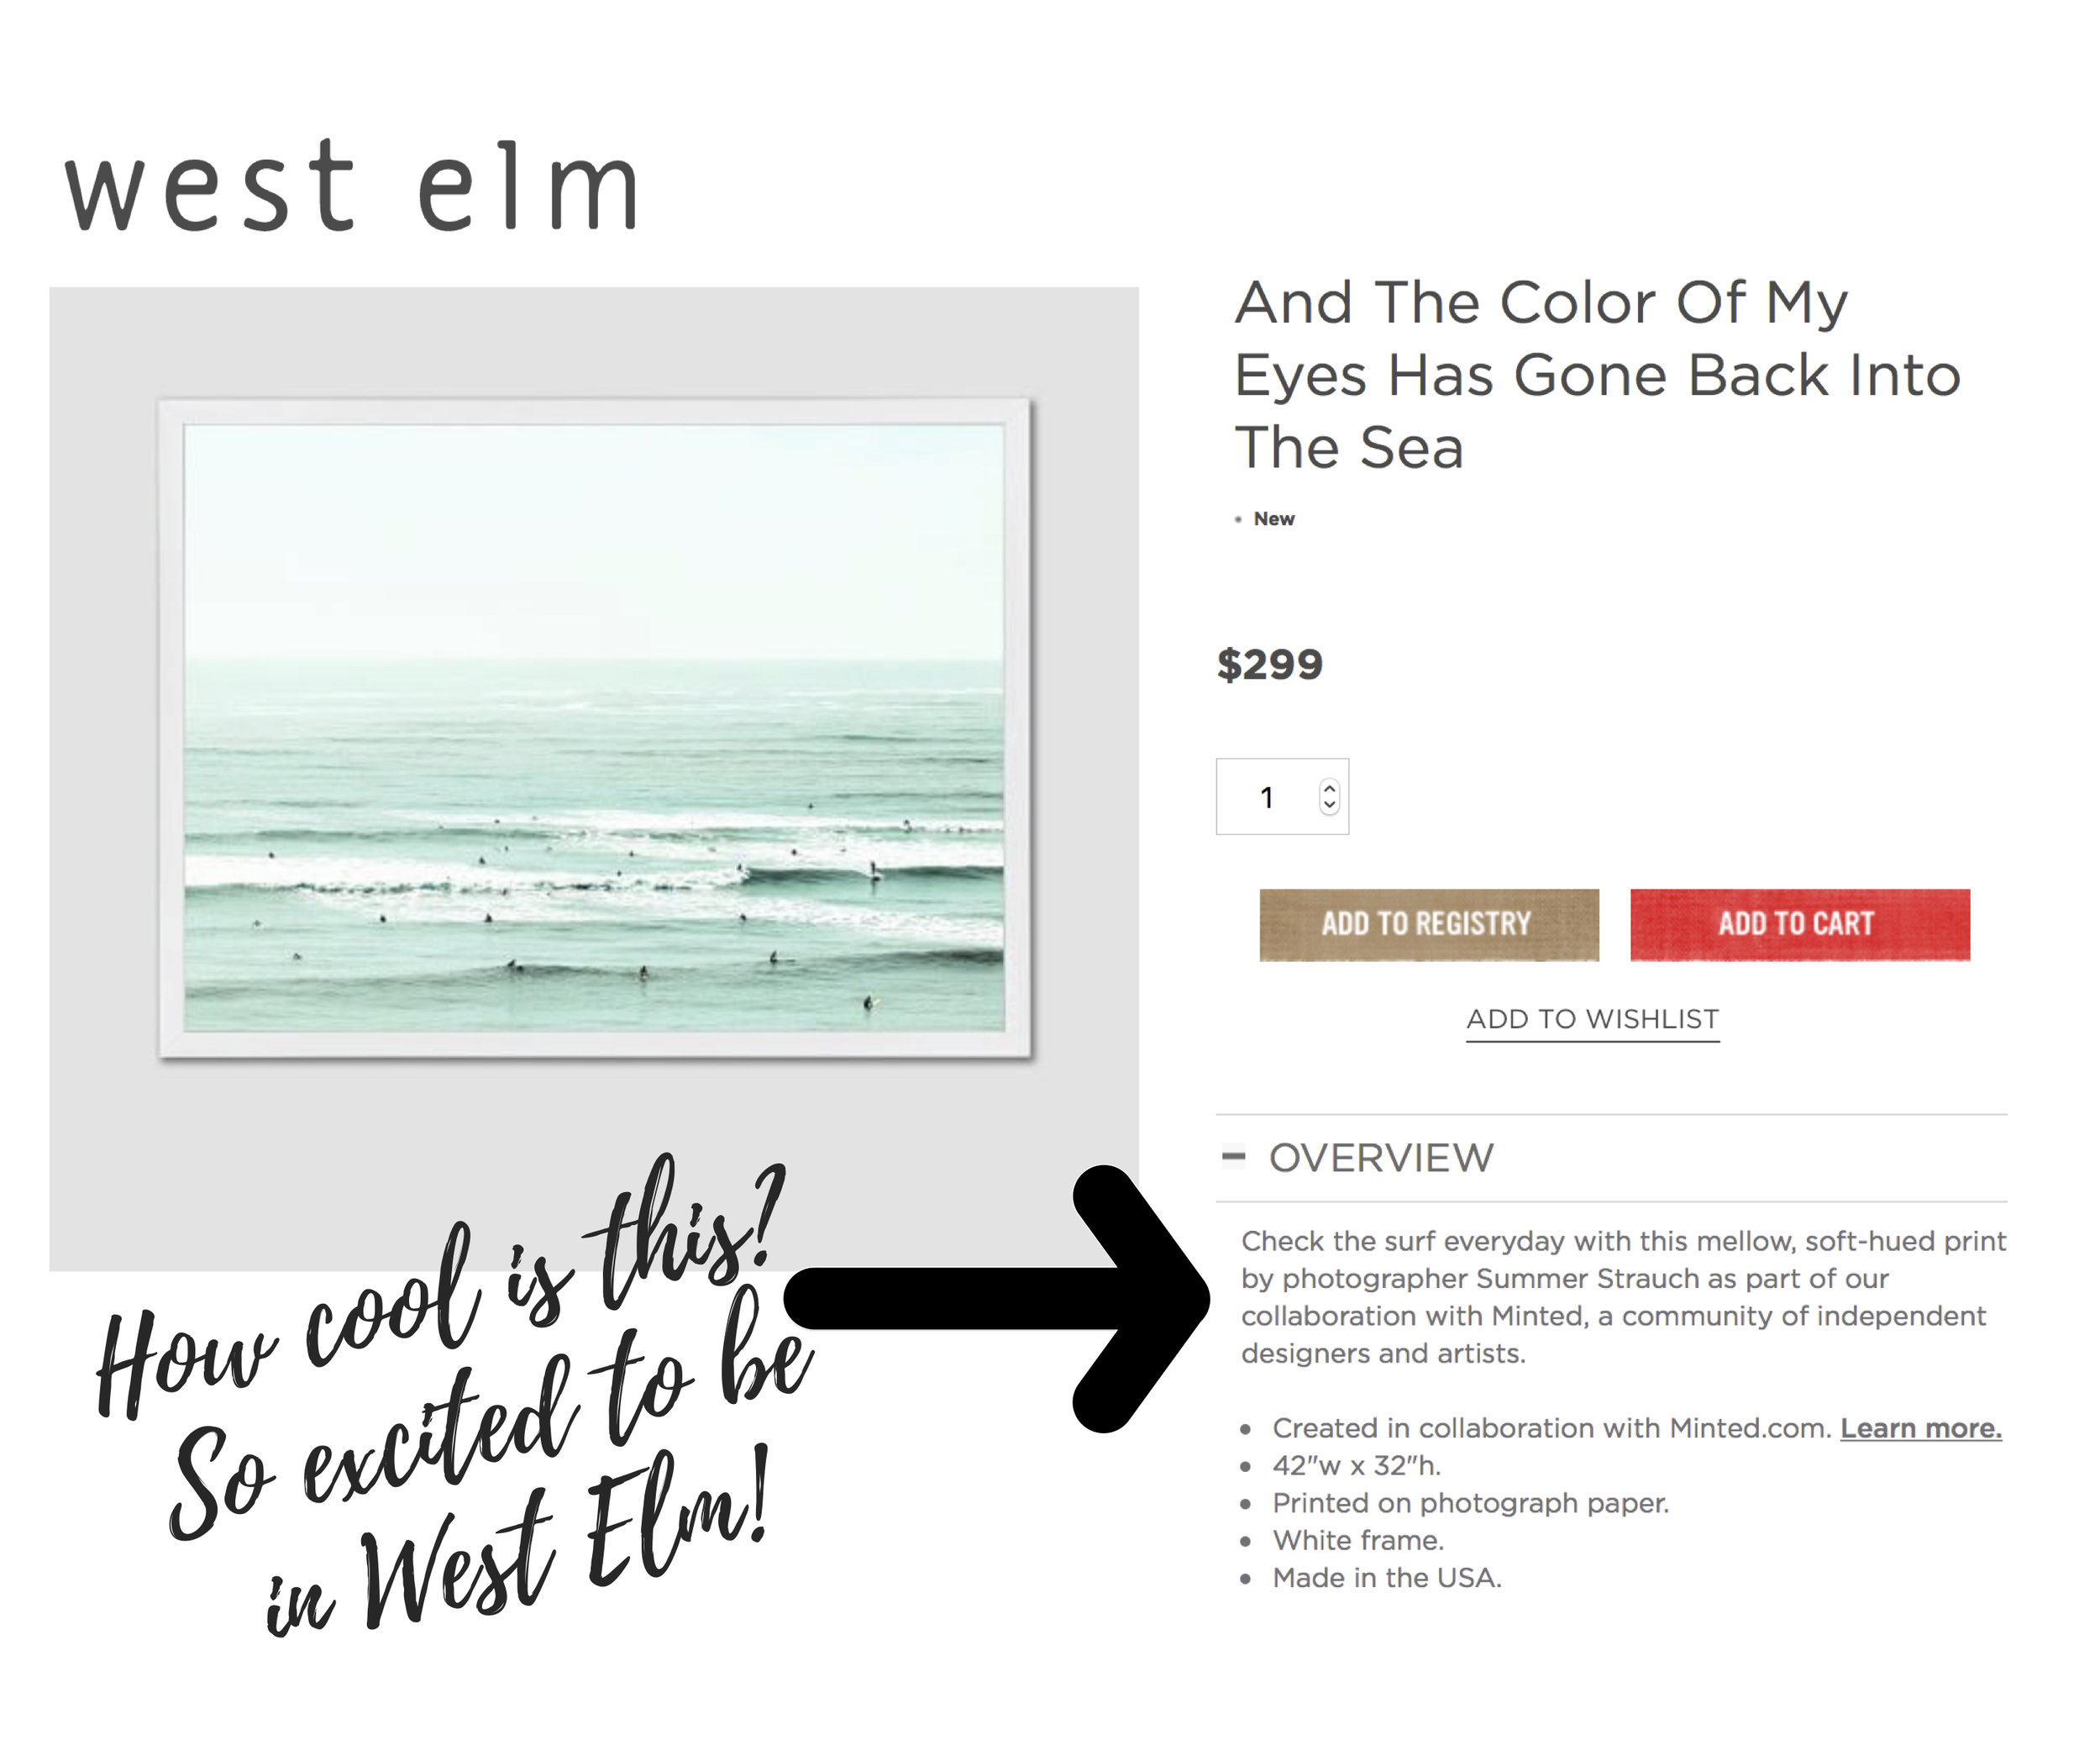 How cool is this? So excited to be in West Elm!.jpg